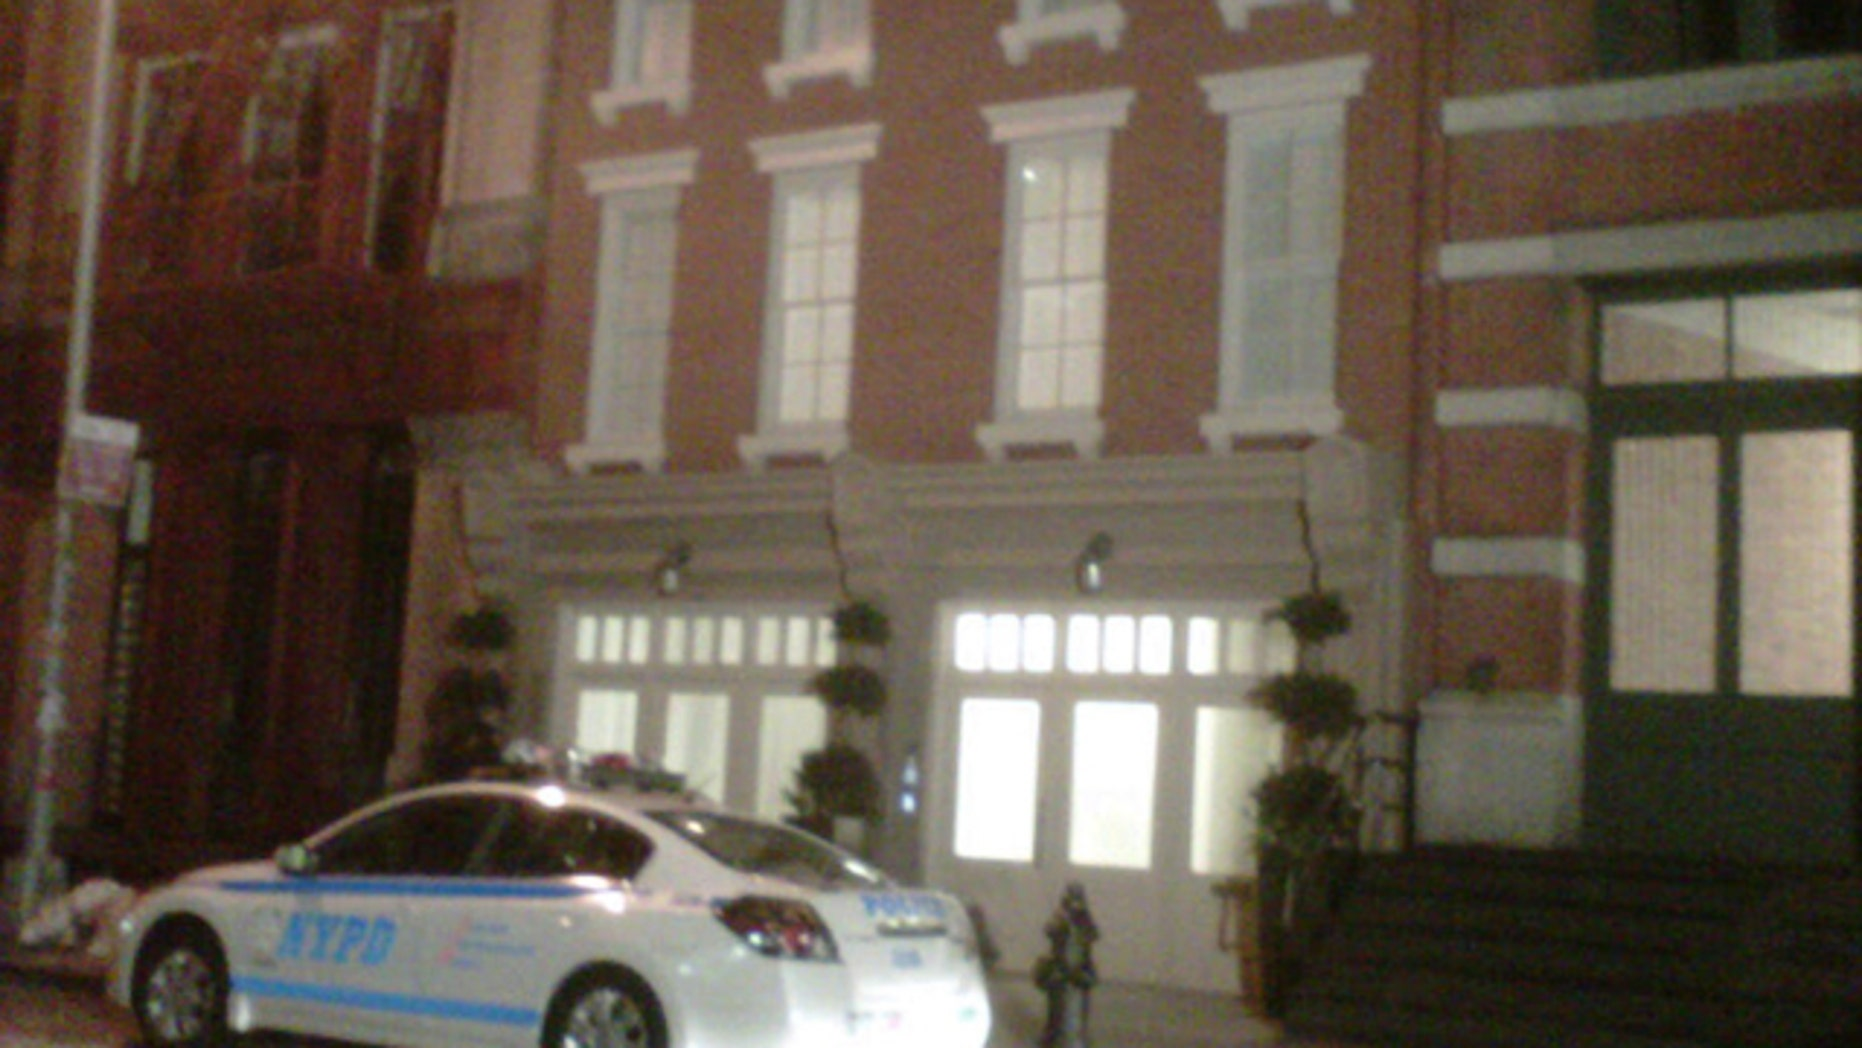 May 25, 2011: Ex-IMF chief Dominique Strauss-Kahn, accused of trying to rape a hotel maid, moved into this lower Manhattan townhouse to serve his house arrest while he's out of jail on $1 million bail.